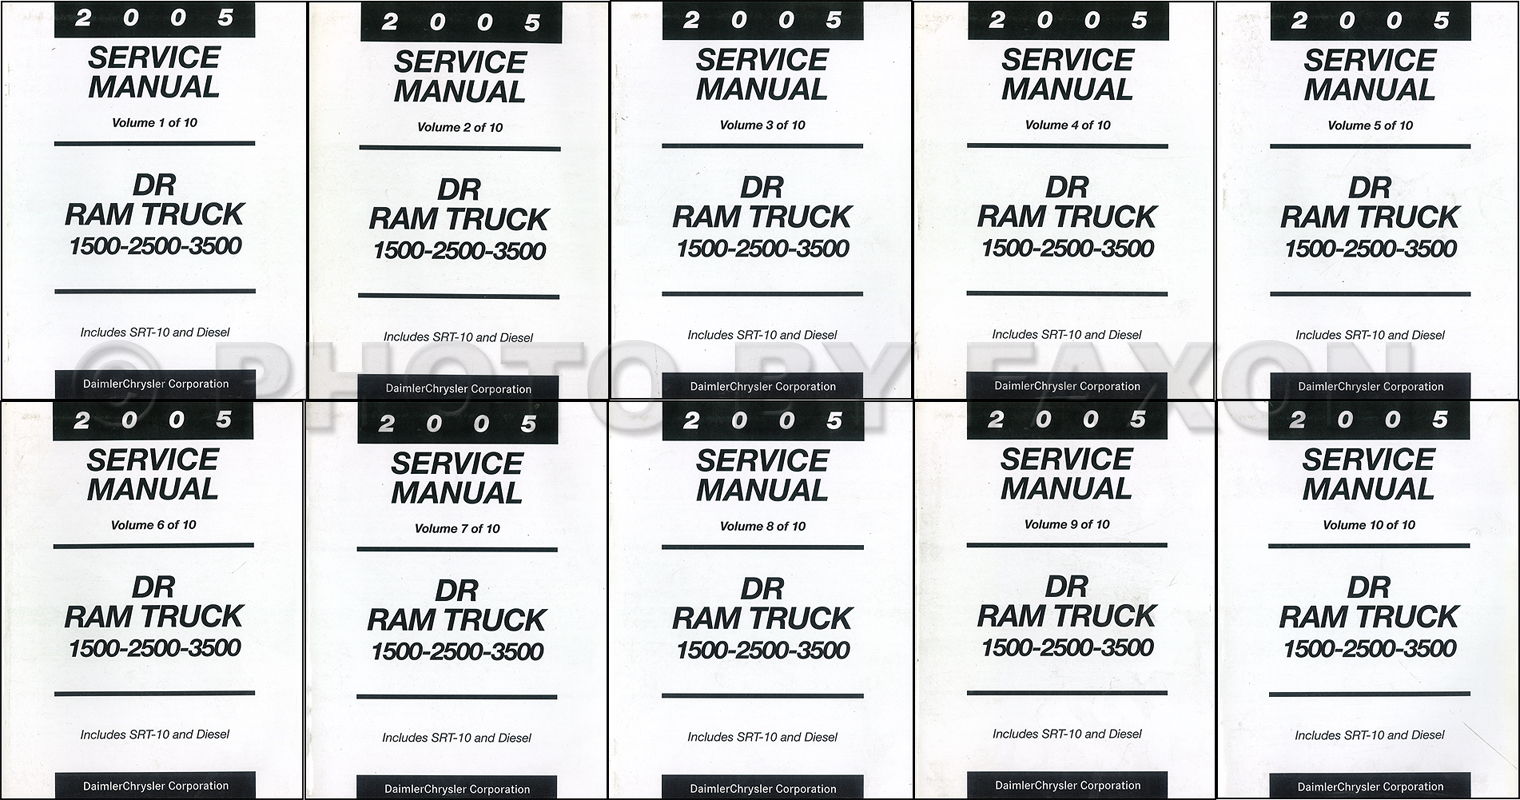 2005 dodge ram srt 10 wiring diagram 2005 dodge ram 1500 pcm wiring diagram